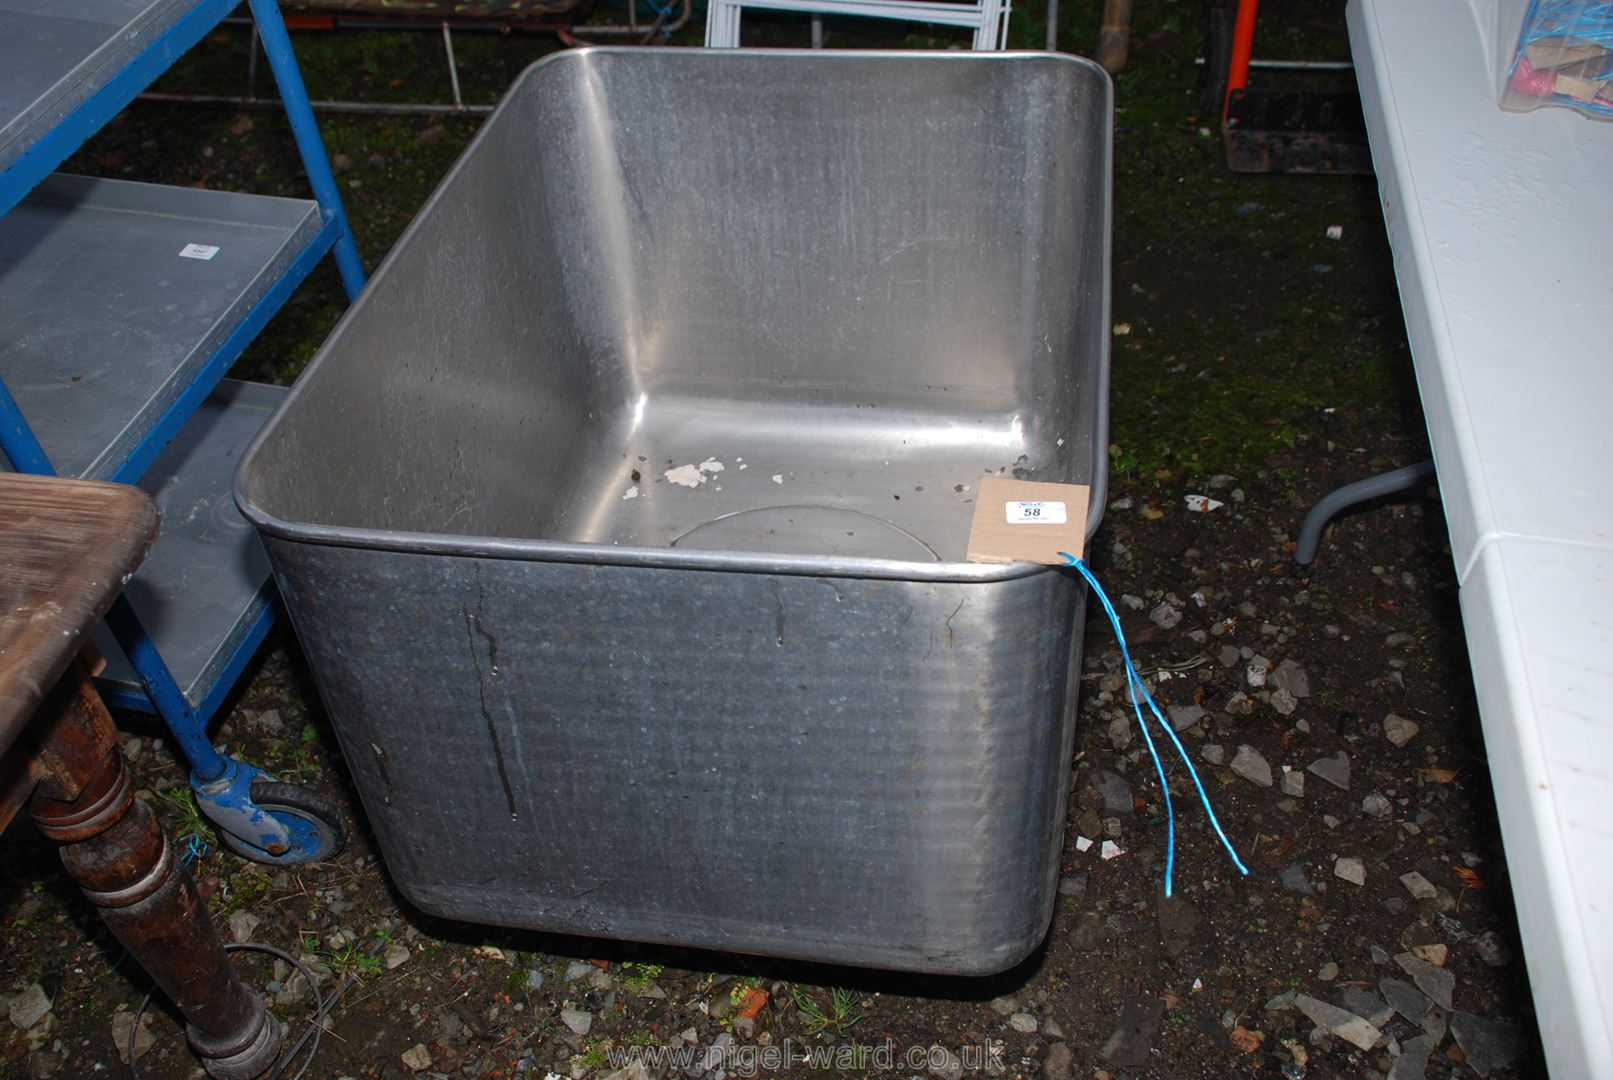 Stainless steel wash tub on wheels